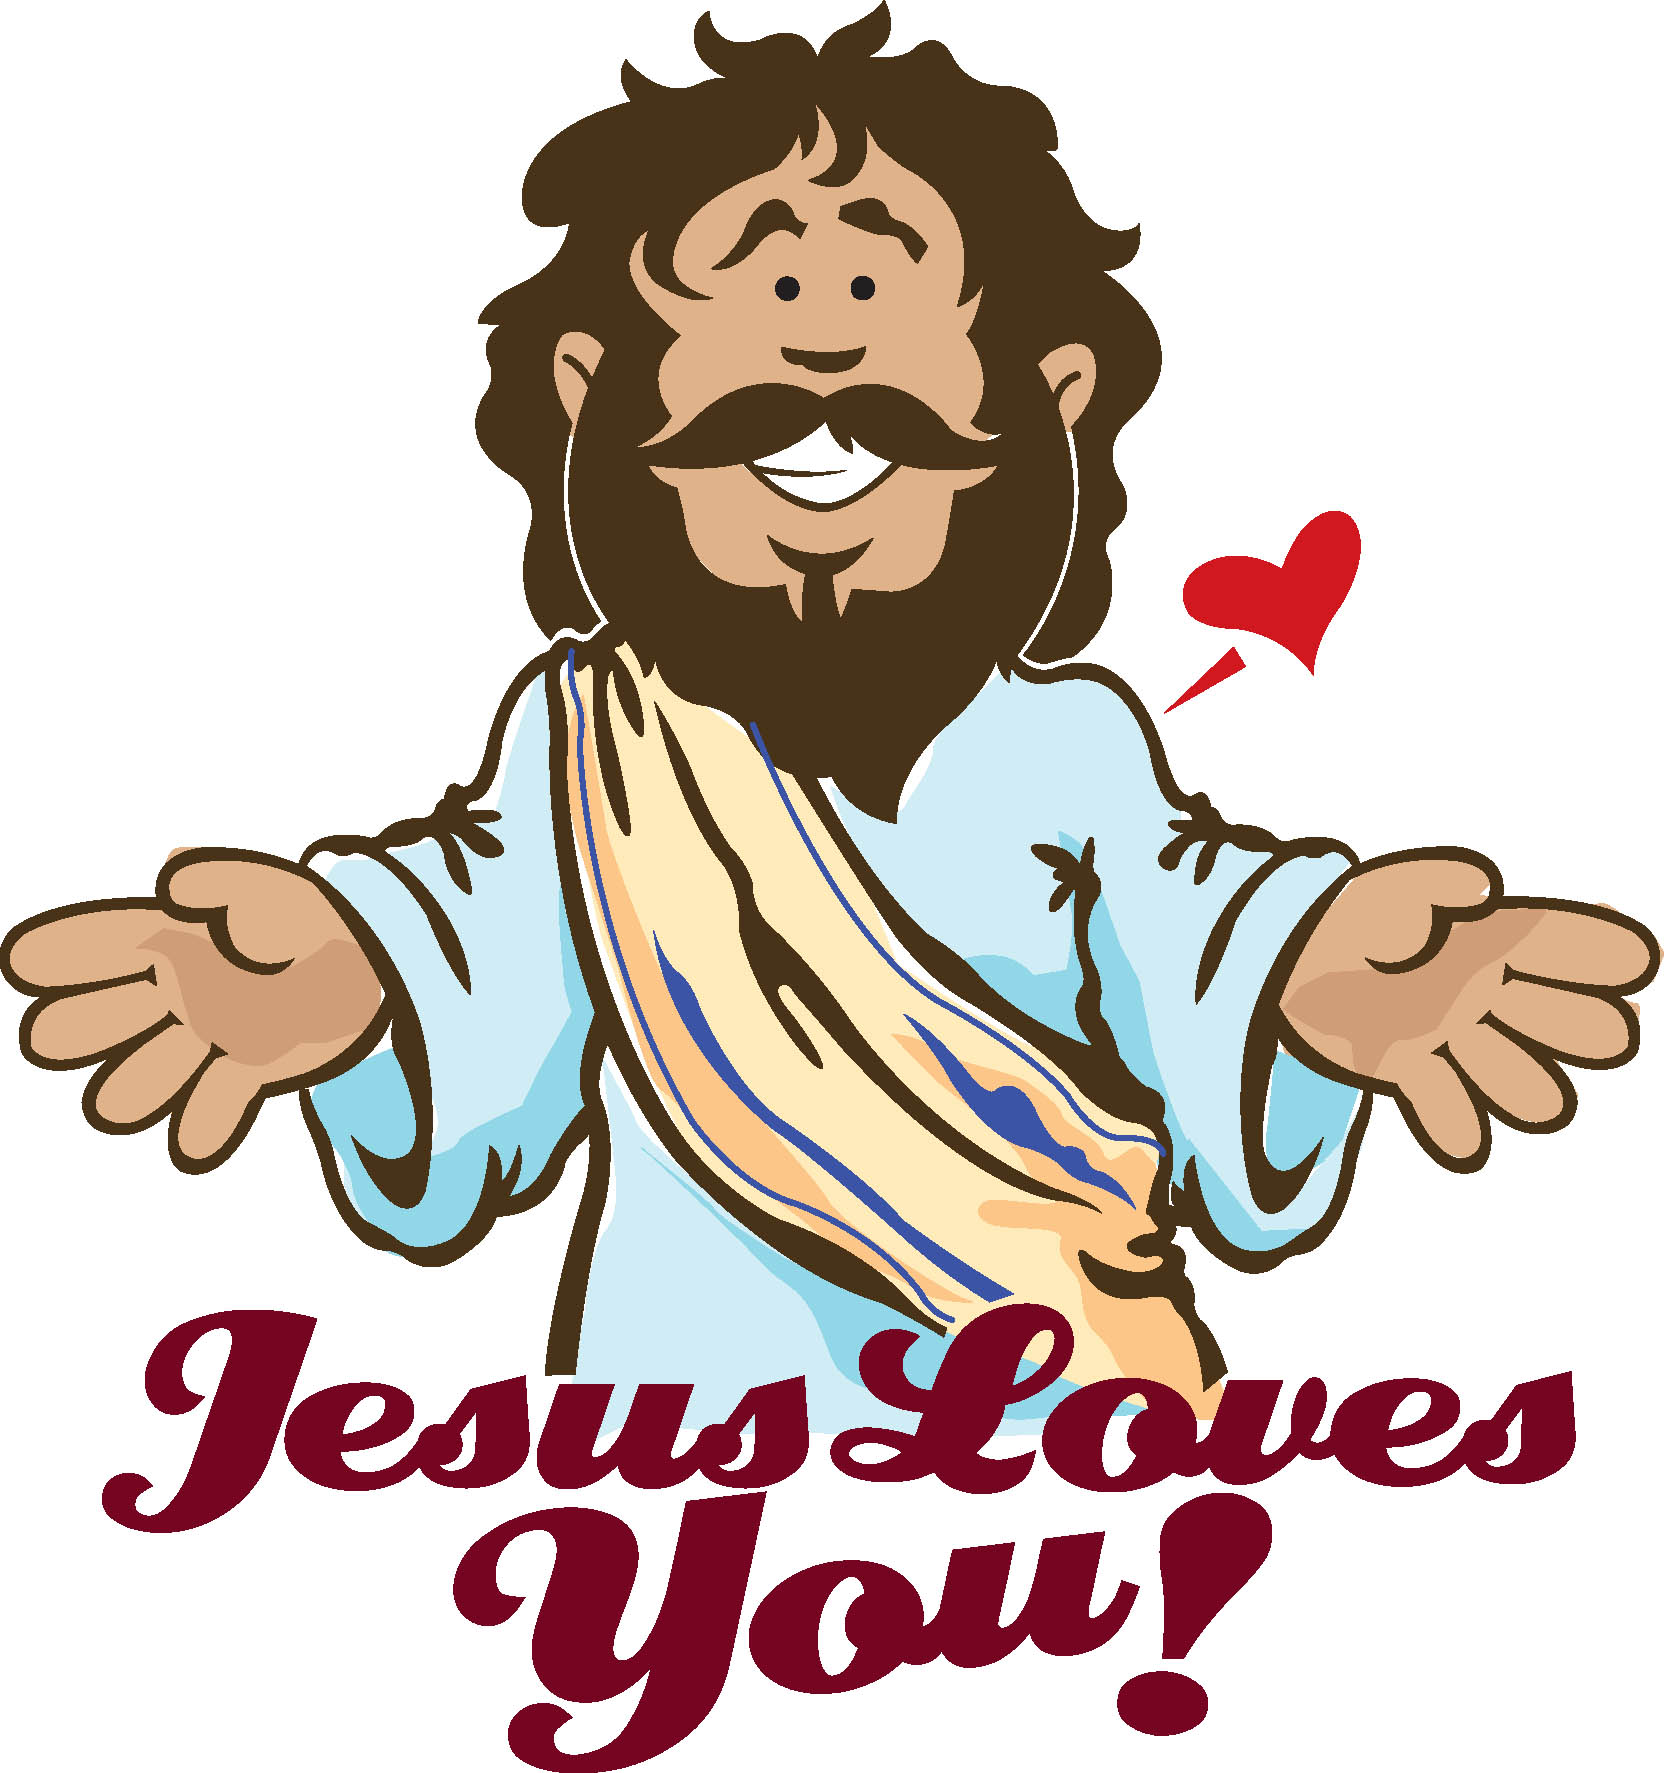 jesus as a child clipart at getdrawings com free for personal use rh getdrawings com